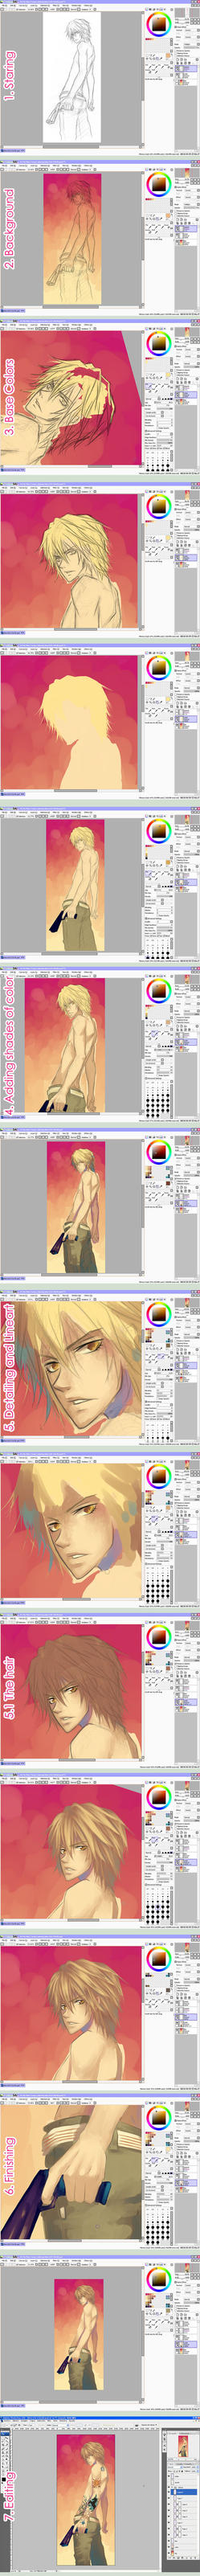 Tutorial: Painting by Celsa